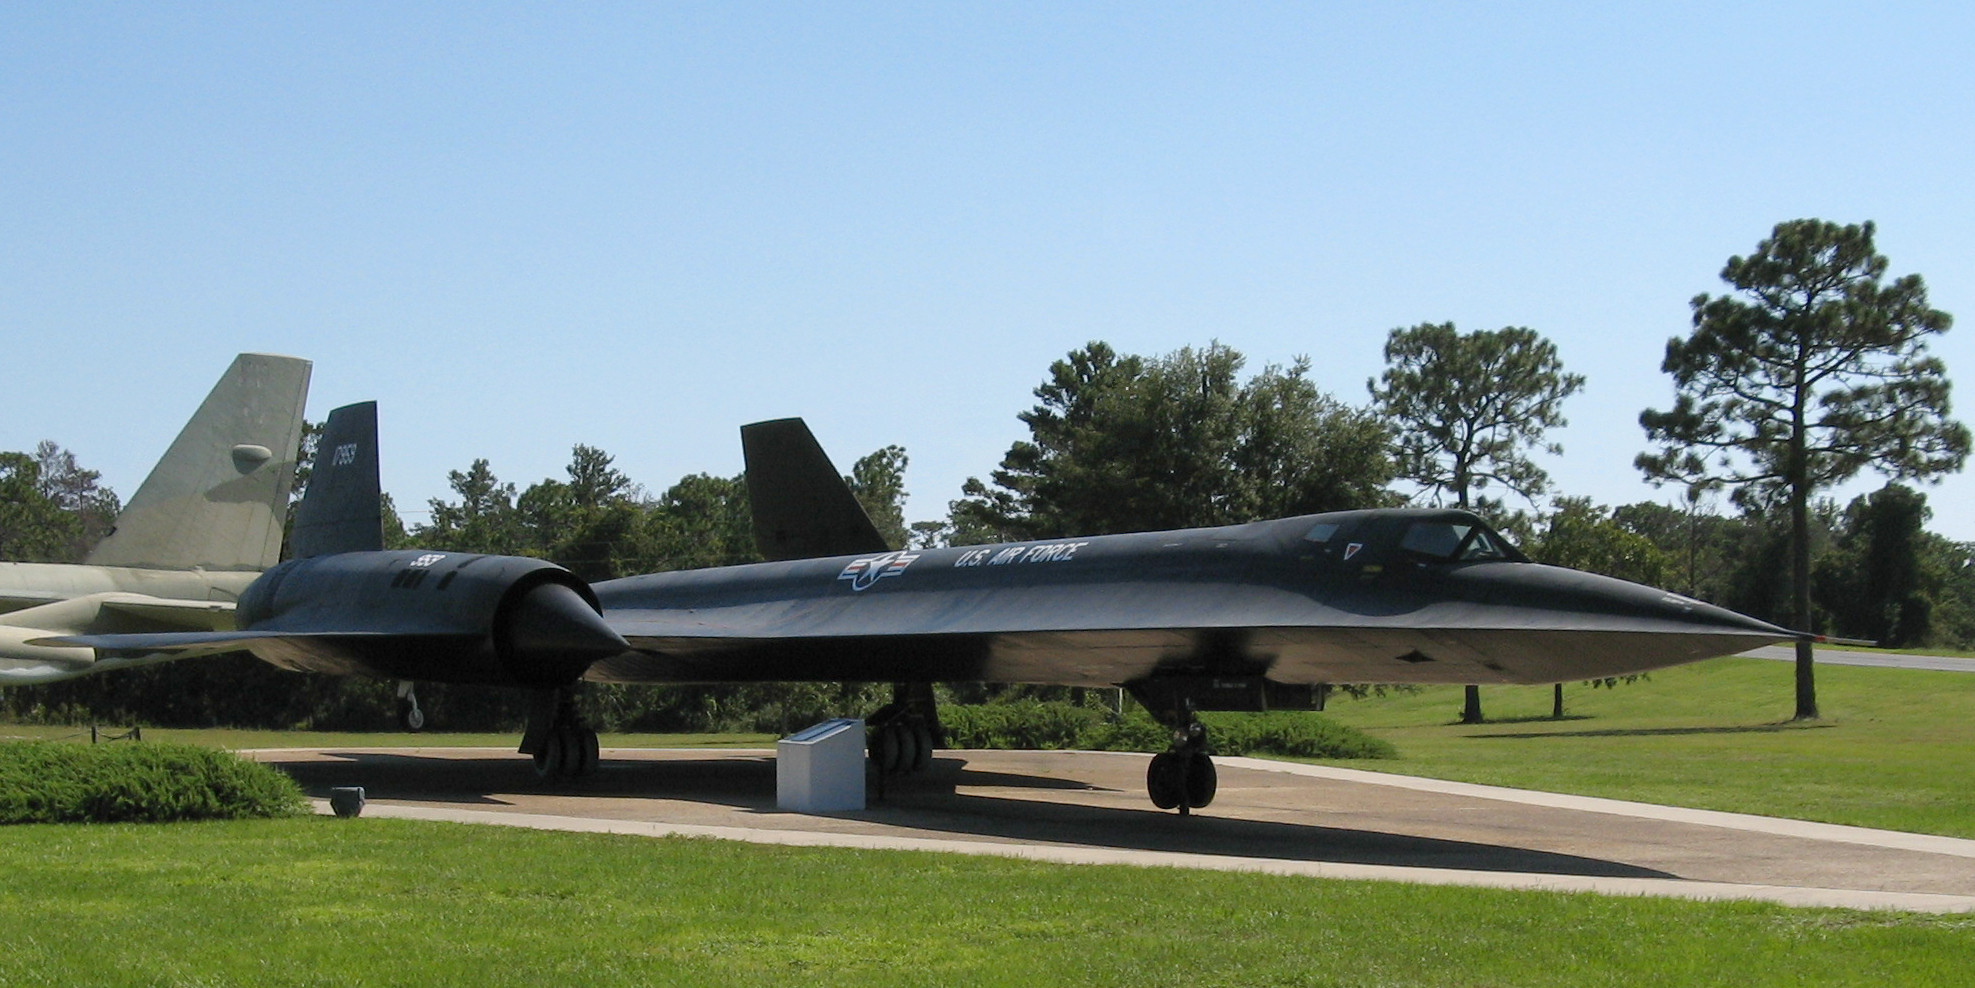 http://upload.wikimedia.org/wikipedia/commons/e/eb/Lockheed_SR-71_Blackbird,_USAF_Armaments_Museum,_Eglin_AFB,_Florida.jpg